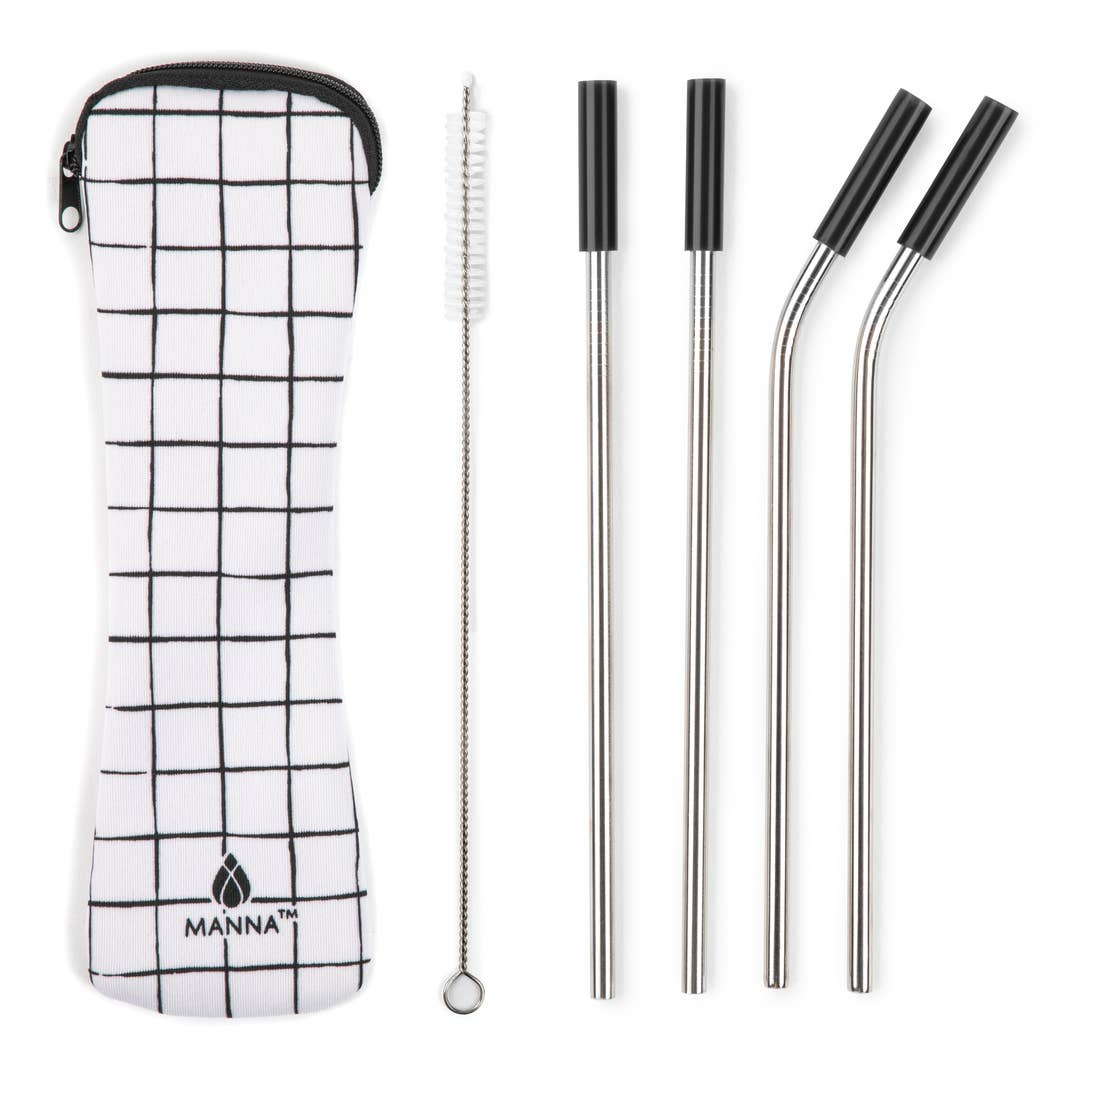 Reusable Stainless Steel Straw Set - 6 Piece Set